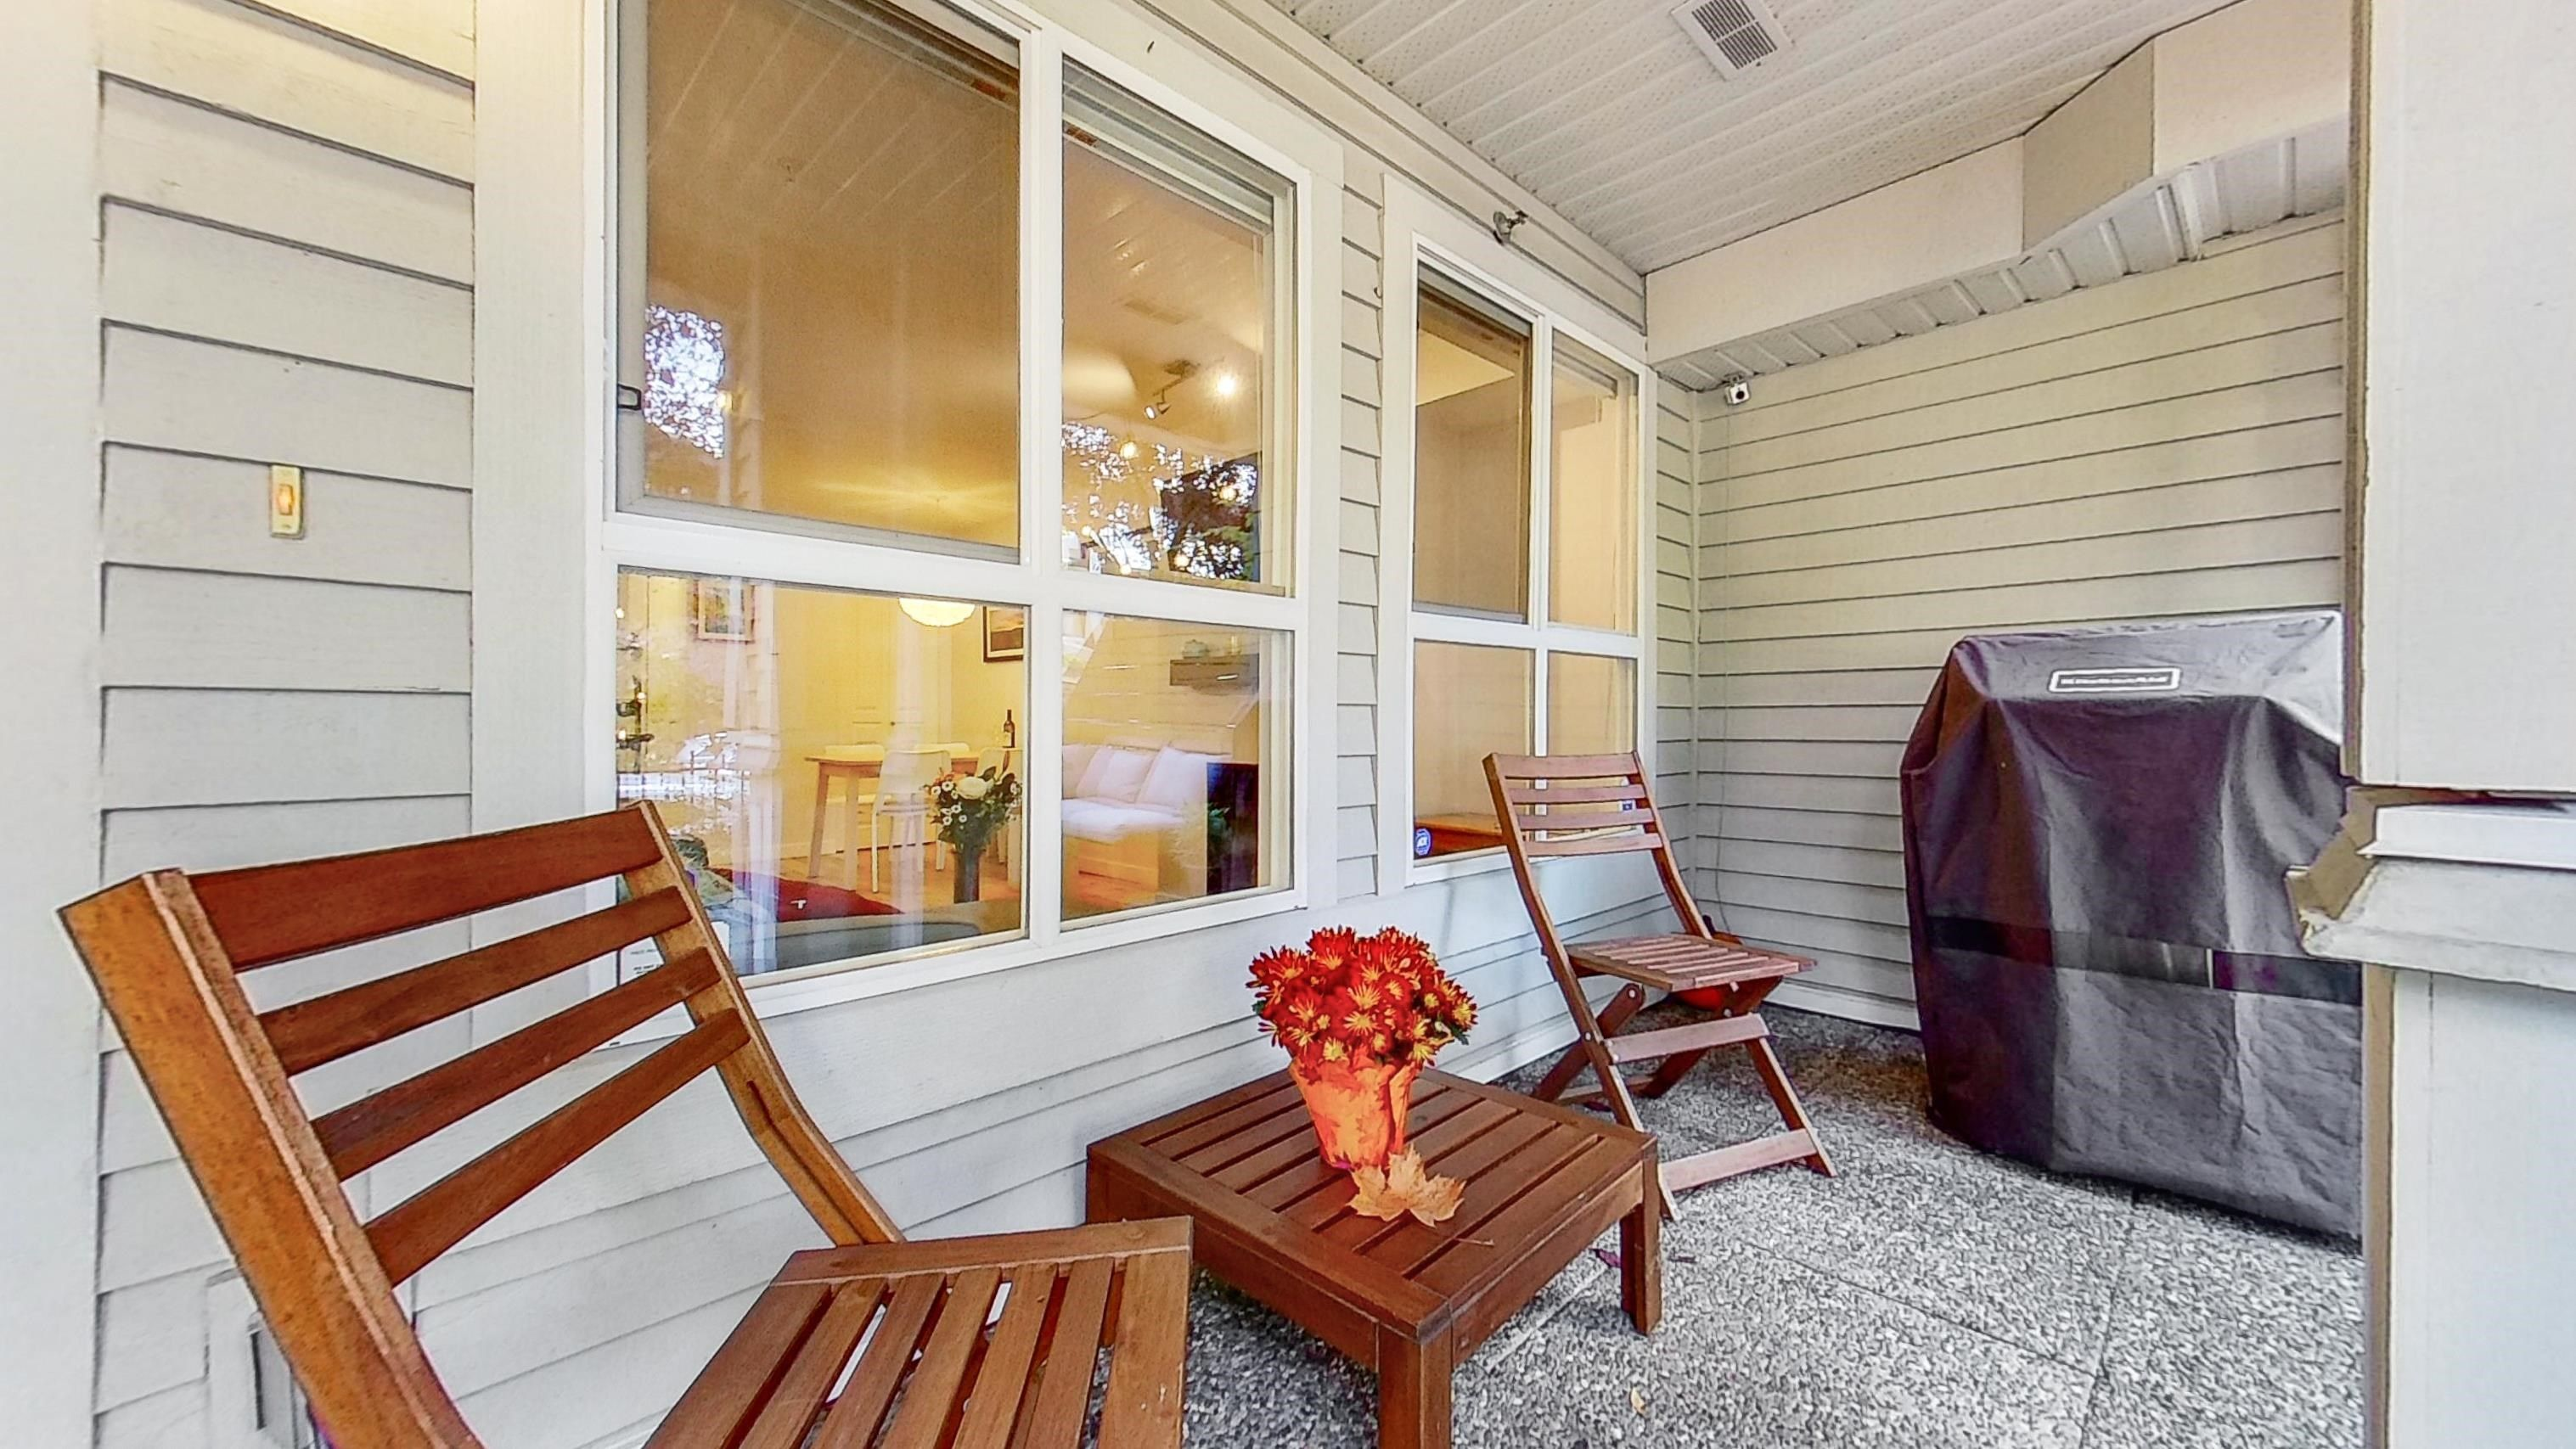 """Main Photo: 3268 HEATHER Street in Vancouver: Cambie Townhouse for sale in """"Heatherstone"""" (Vancouver West)  : MLS®# R2625266"""